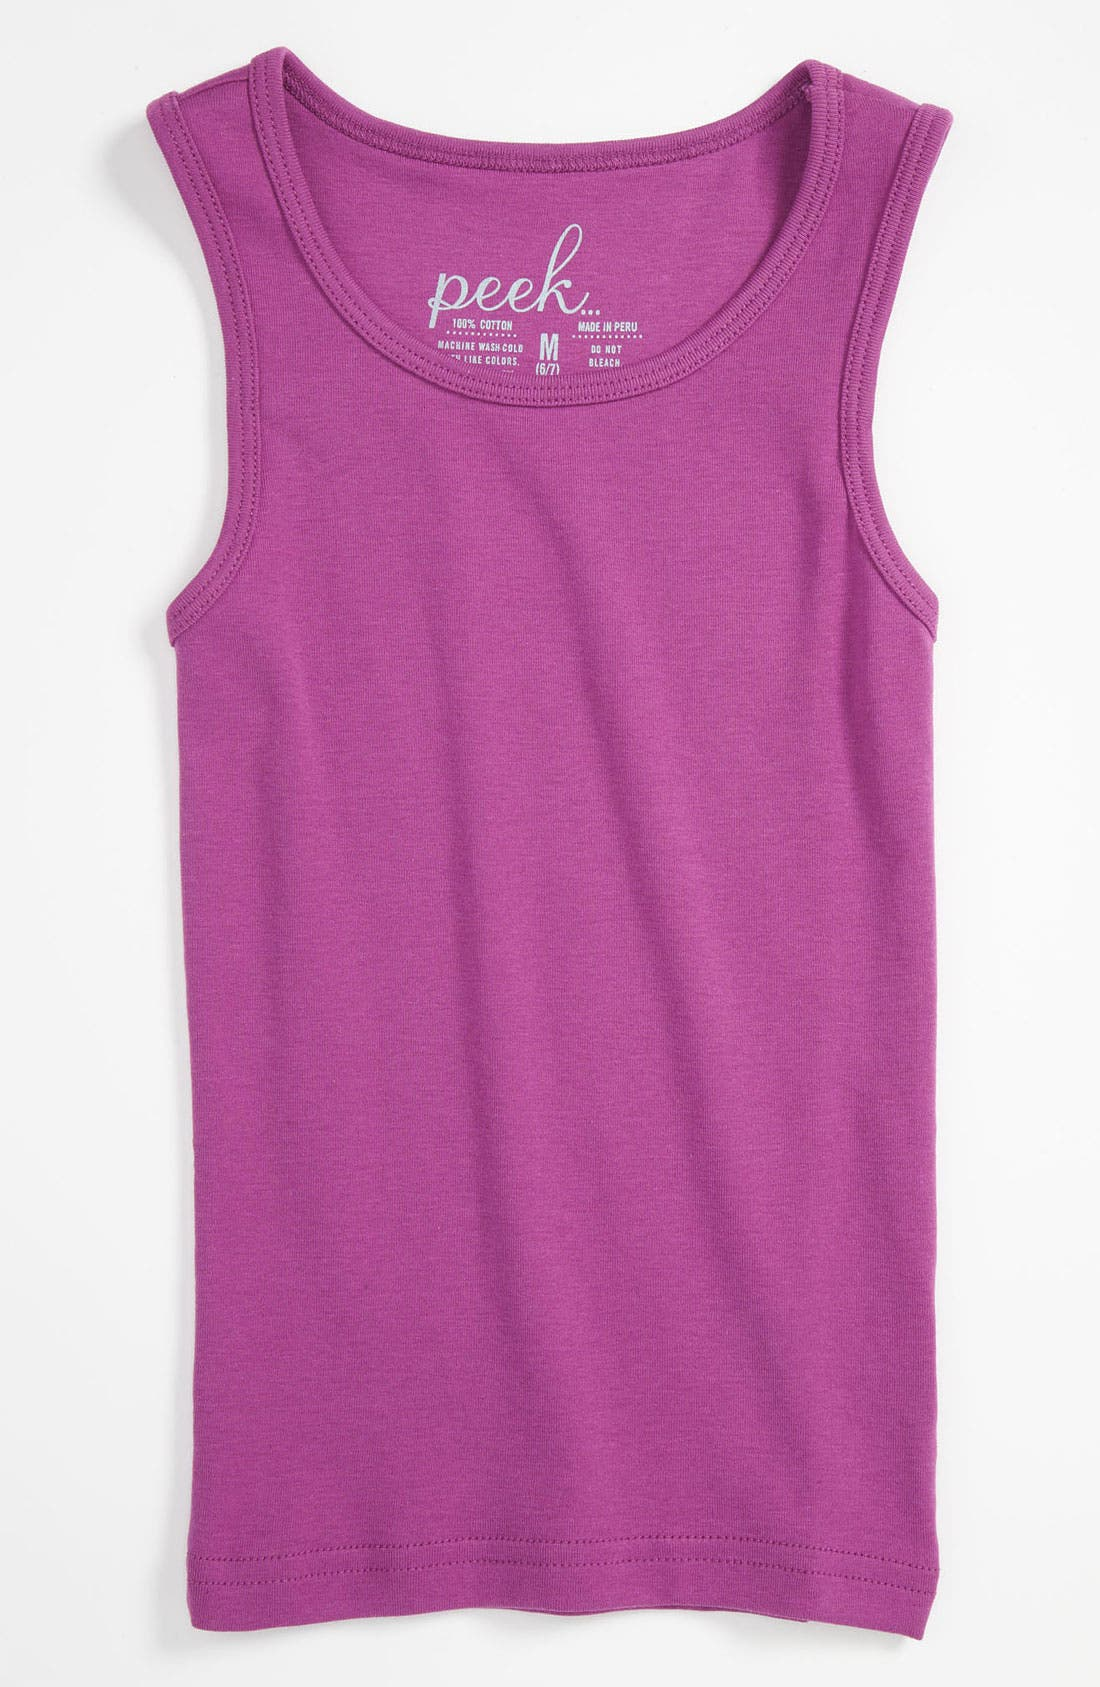 Alternate Image 1 Selected - Peek 'Daisy' Tank Top (Toddler, Little Girls & Big Girls)